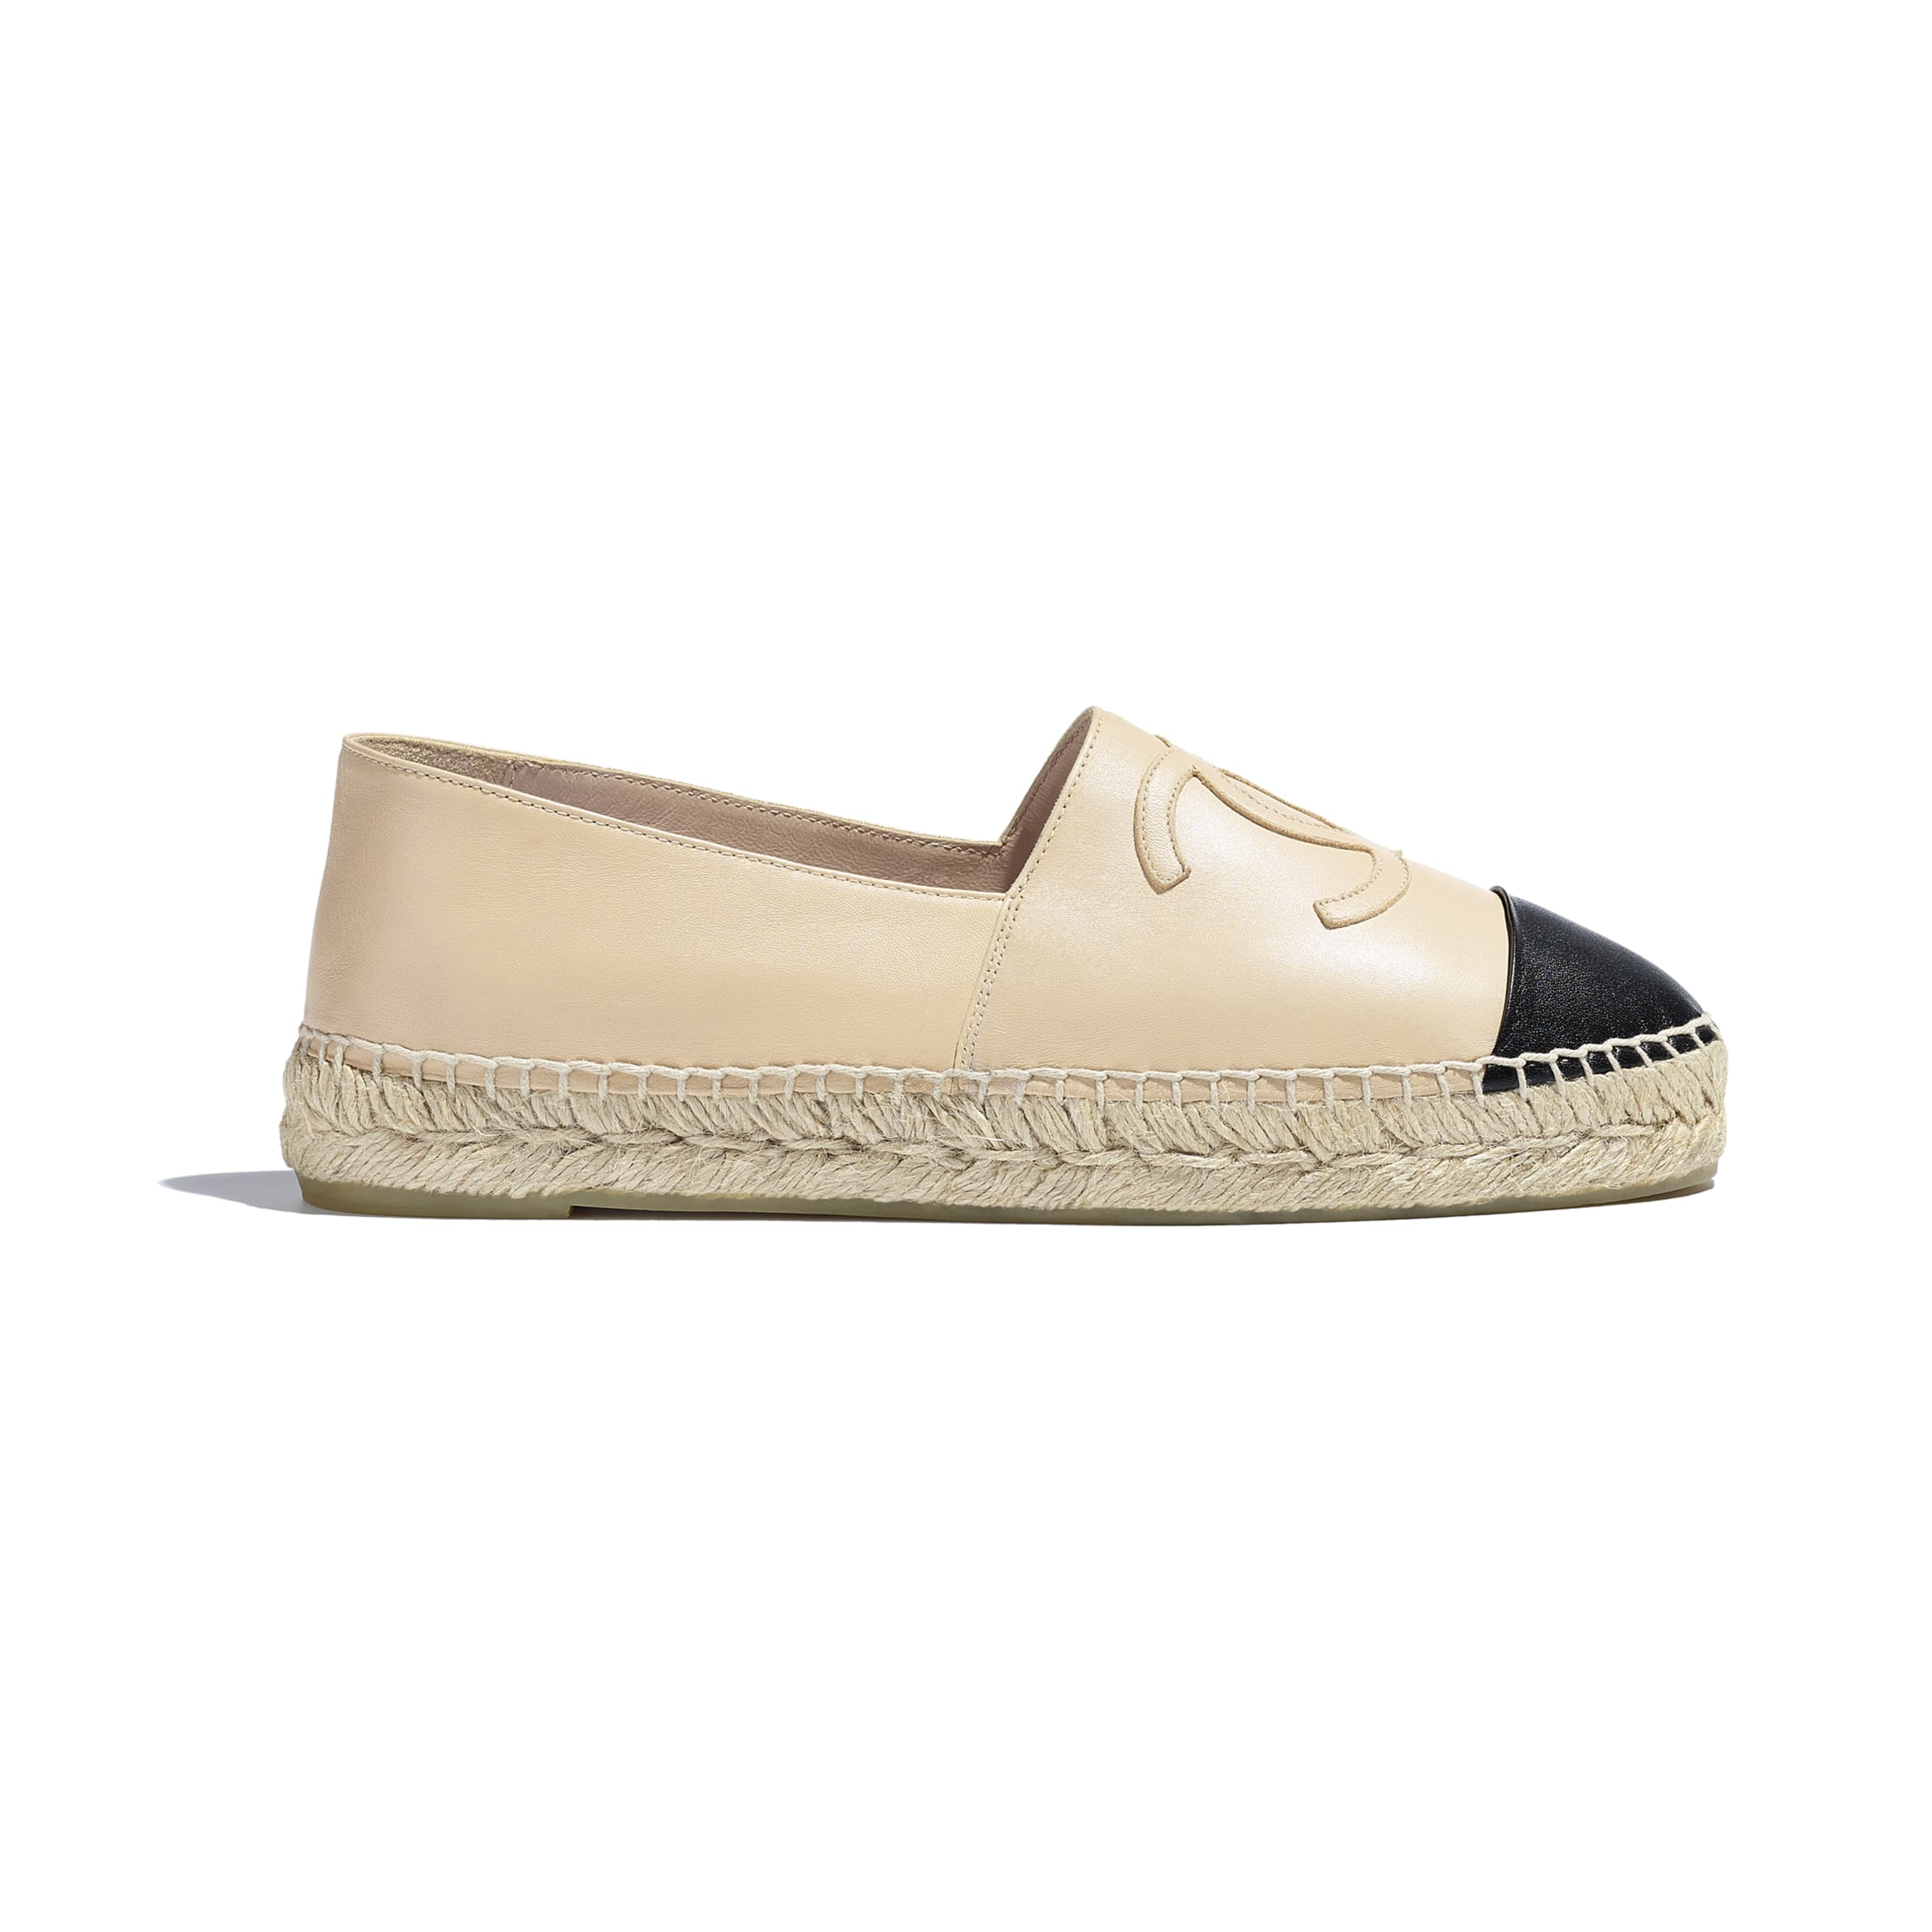 Espadrilles - Beige & Black - Lambskin - CHANEL - Default view - see standard sized version